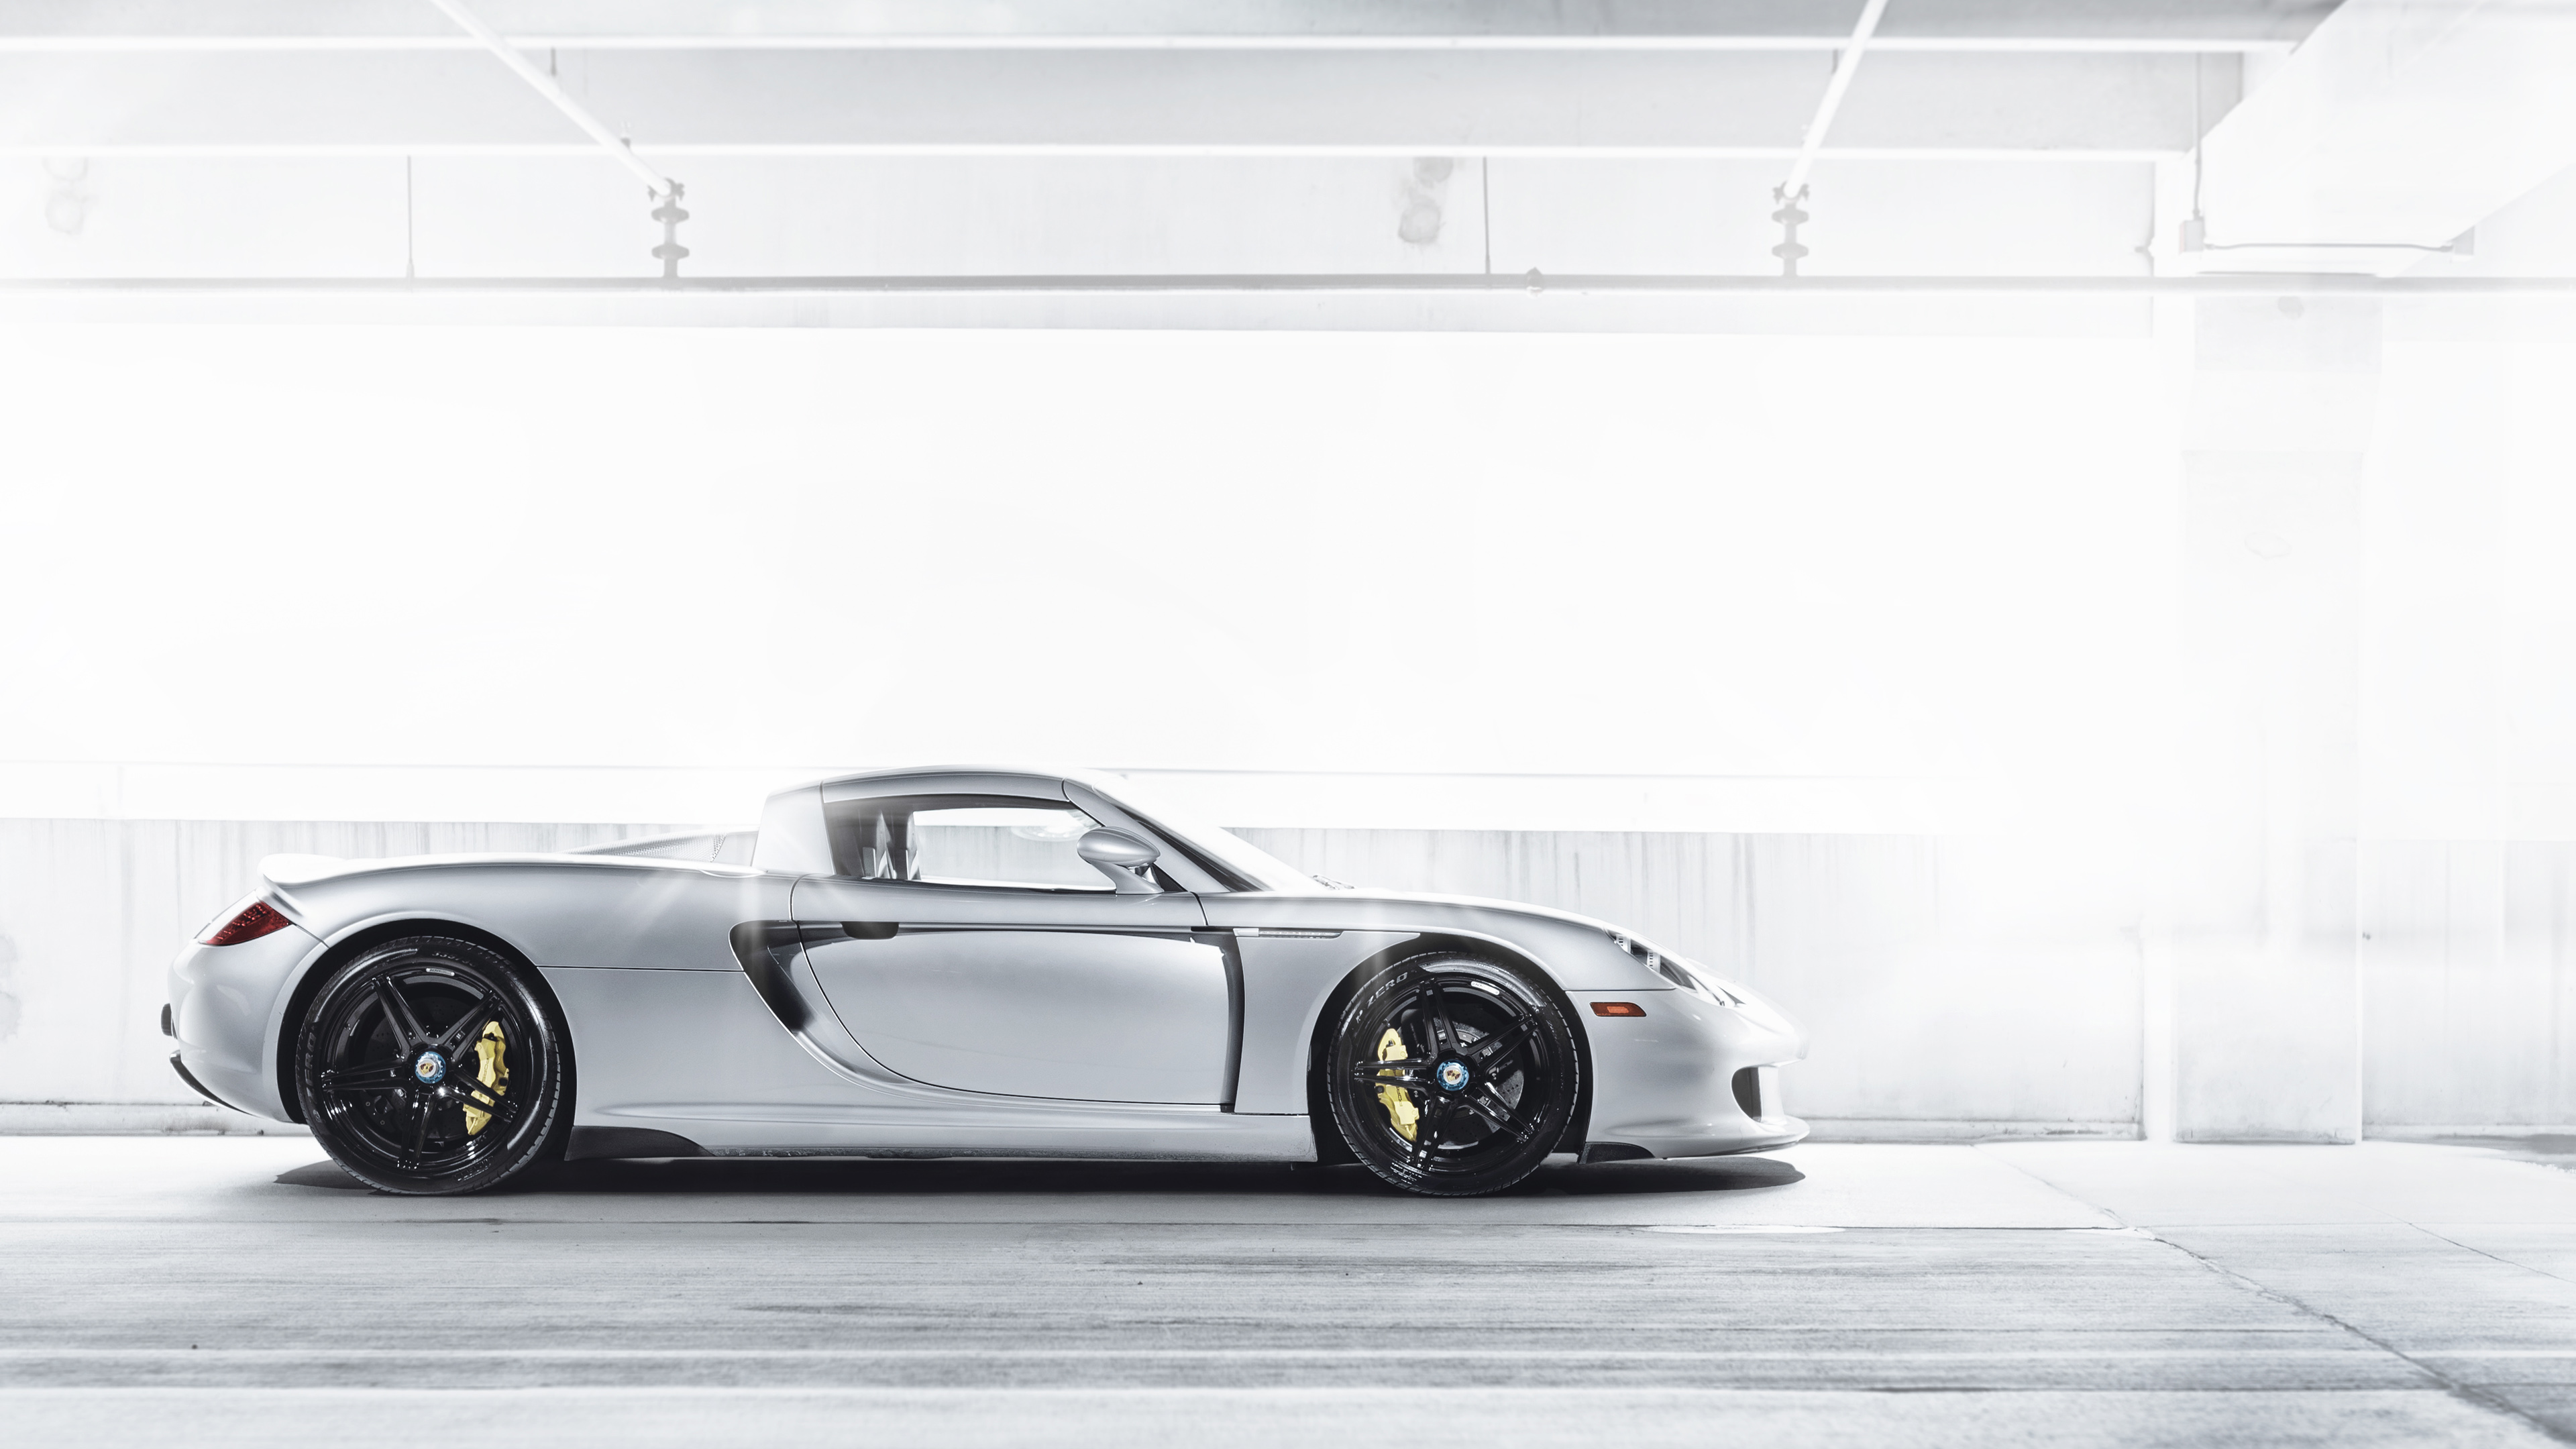 Adv1 Porsche Carrera Gt Wallpaper Hd Car Wallpapers Id